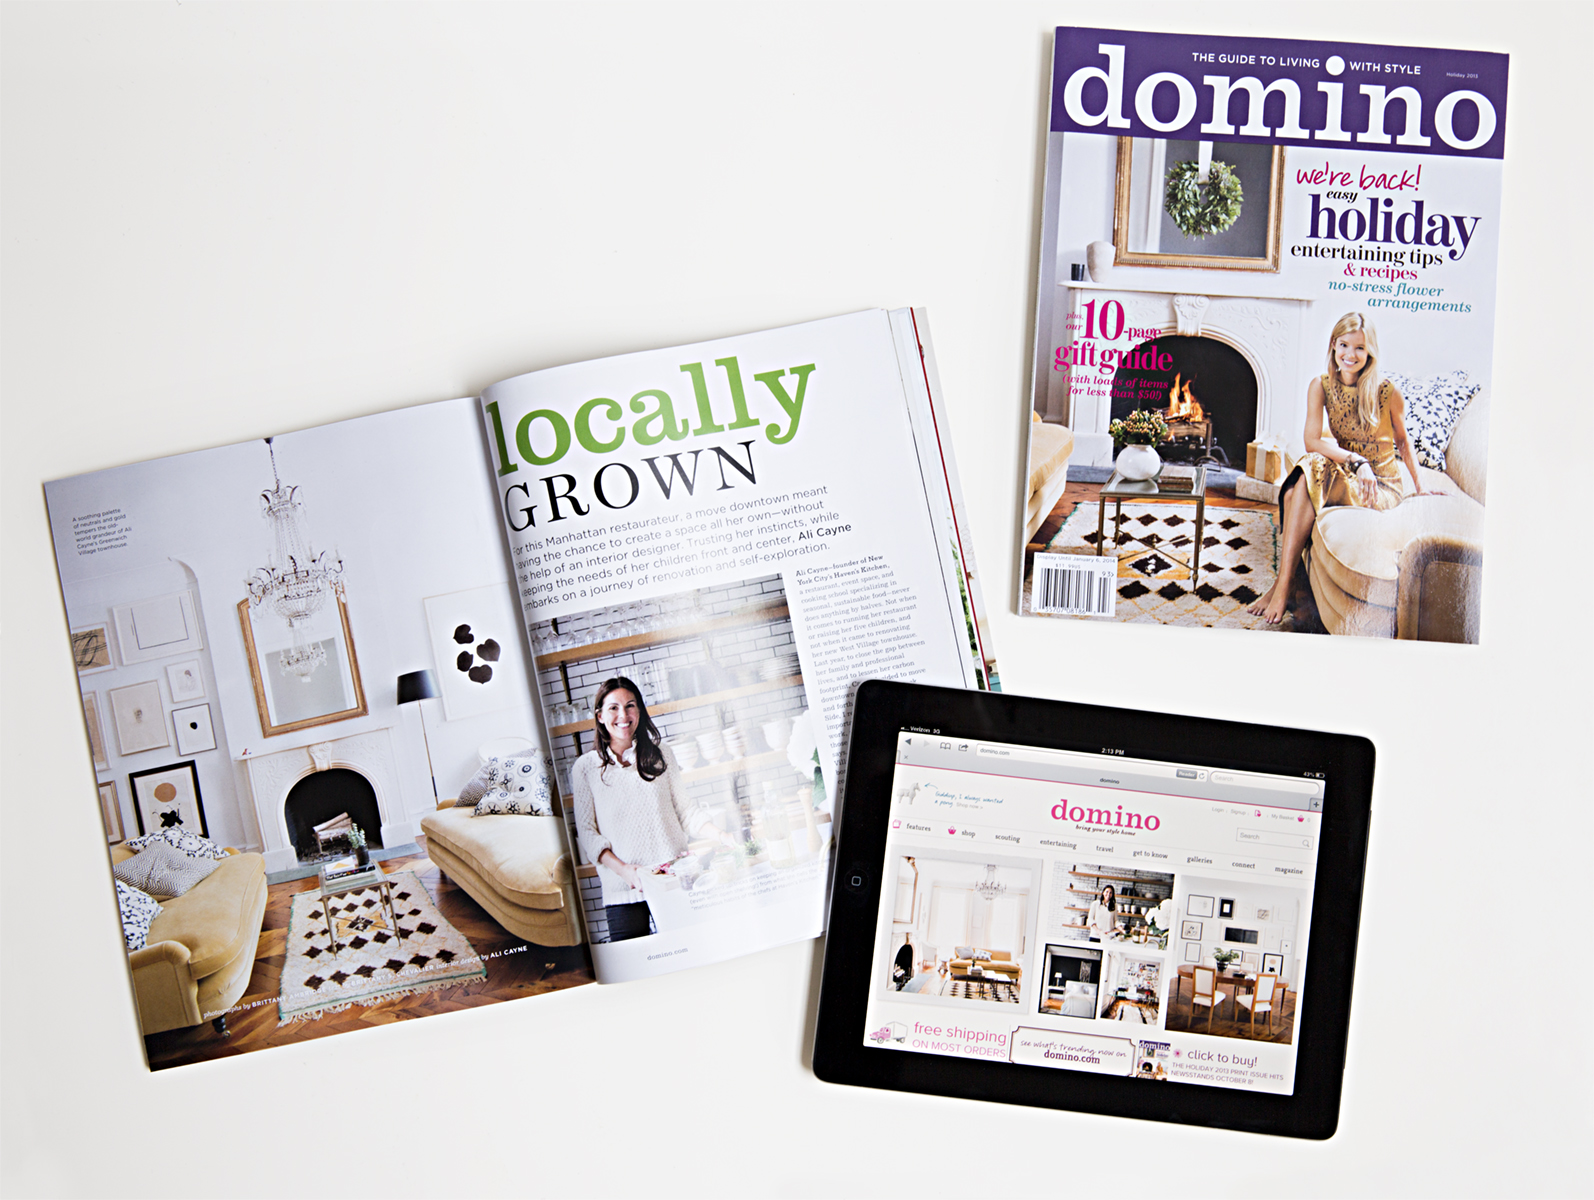 Domino relaunches as content-commerce hybrid